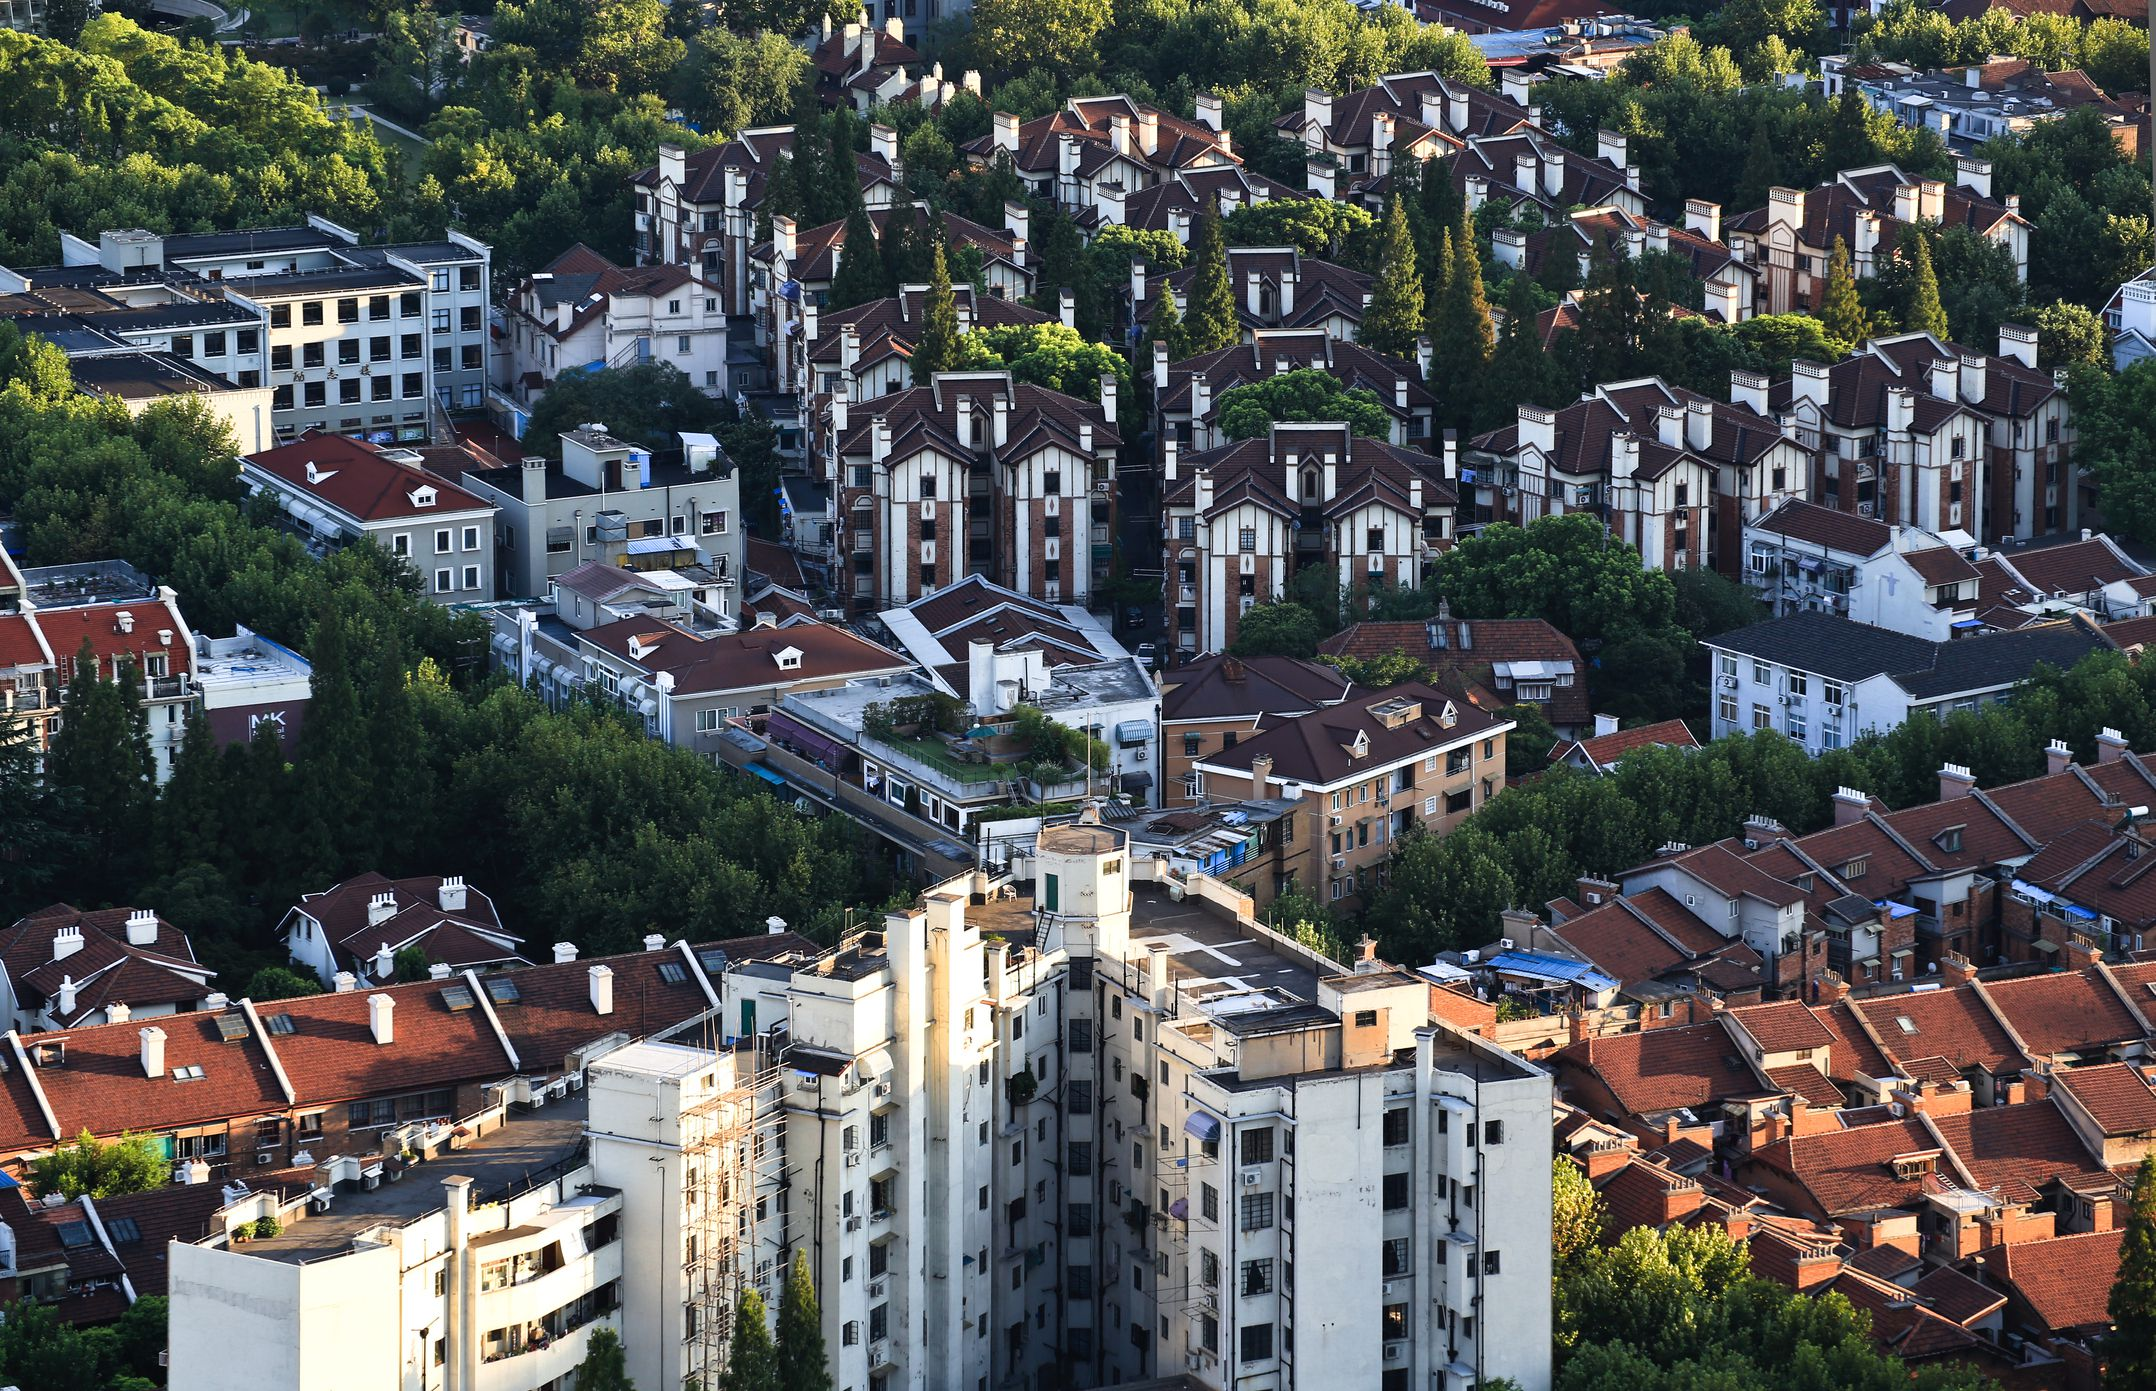 Aerial view of the formerly French concession in Shanghai, dotted with green forest against red terracotta roof